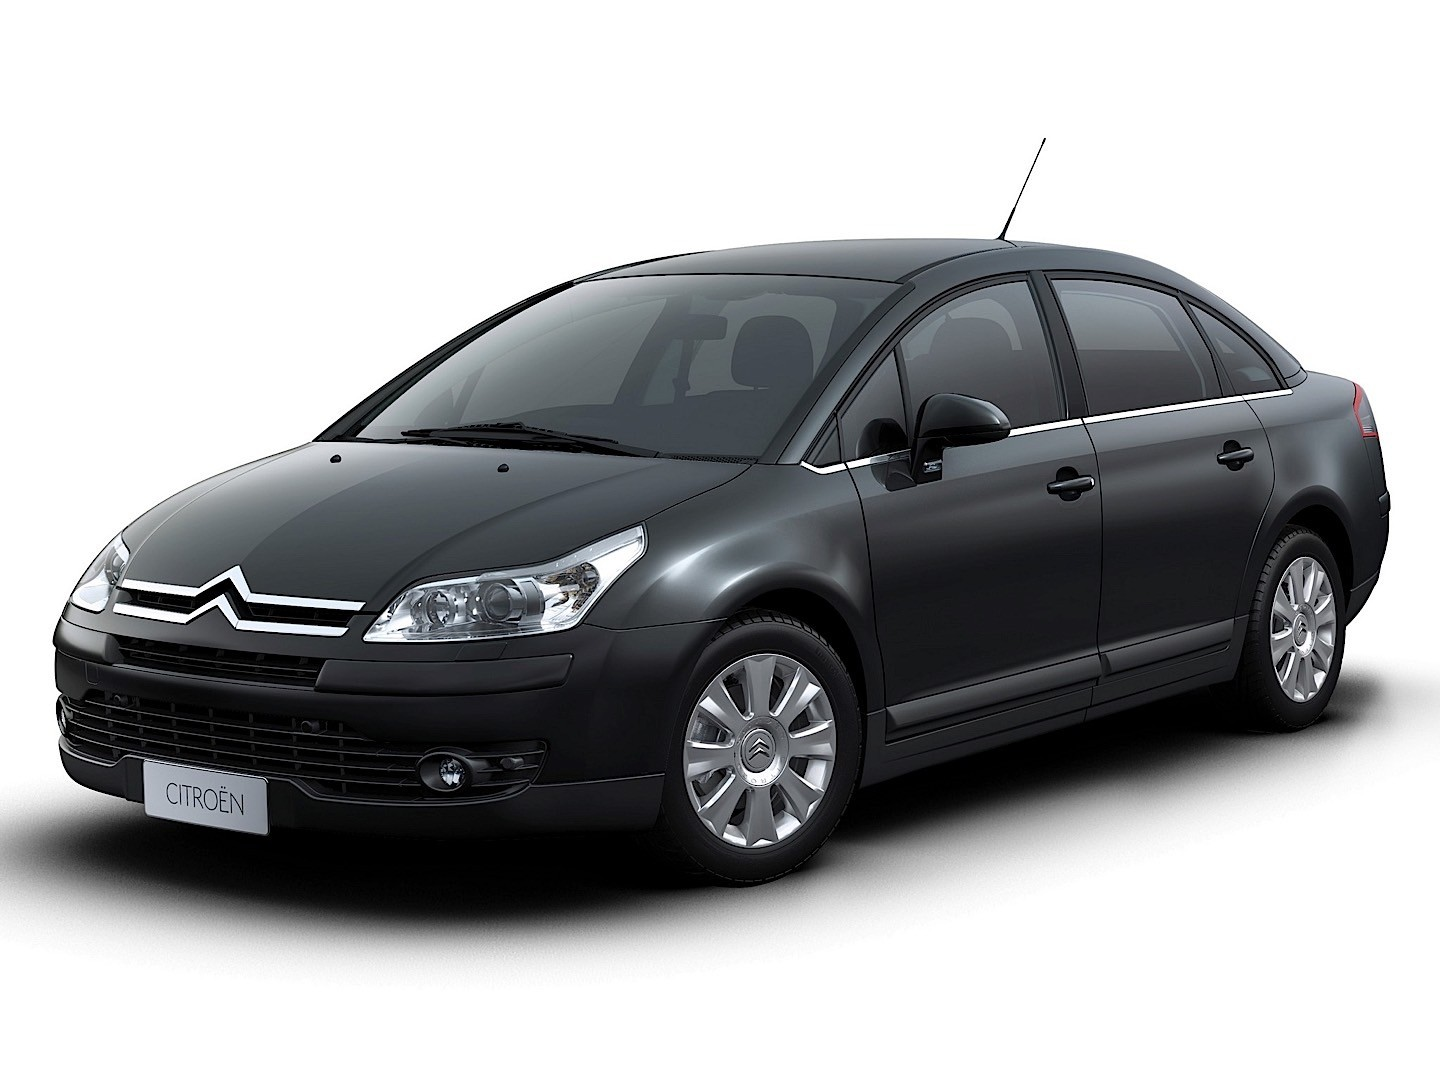 citroen c4 sedan specs 2007 2008 2009 2010 2011 2012 autoevolution. Black Bedroom Furniture Sets. Home Design Ideas